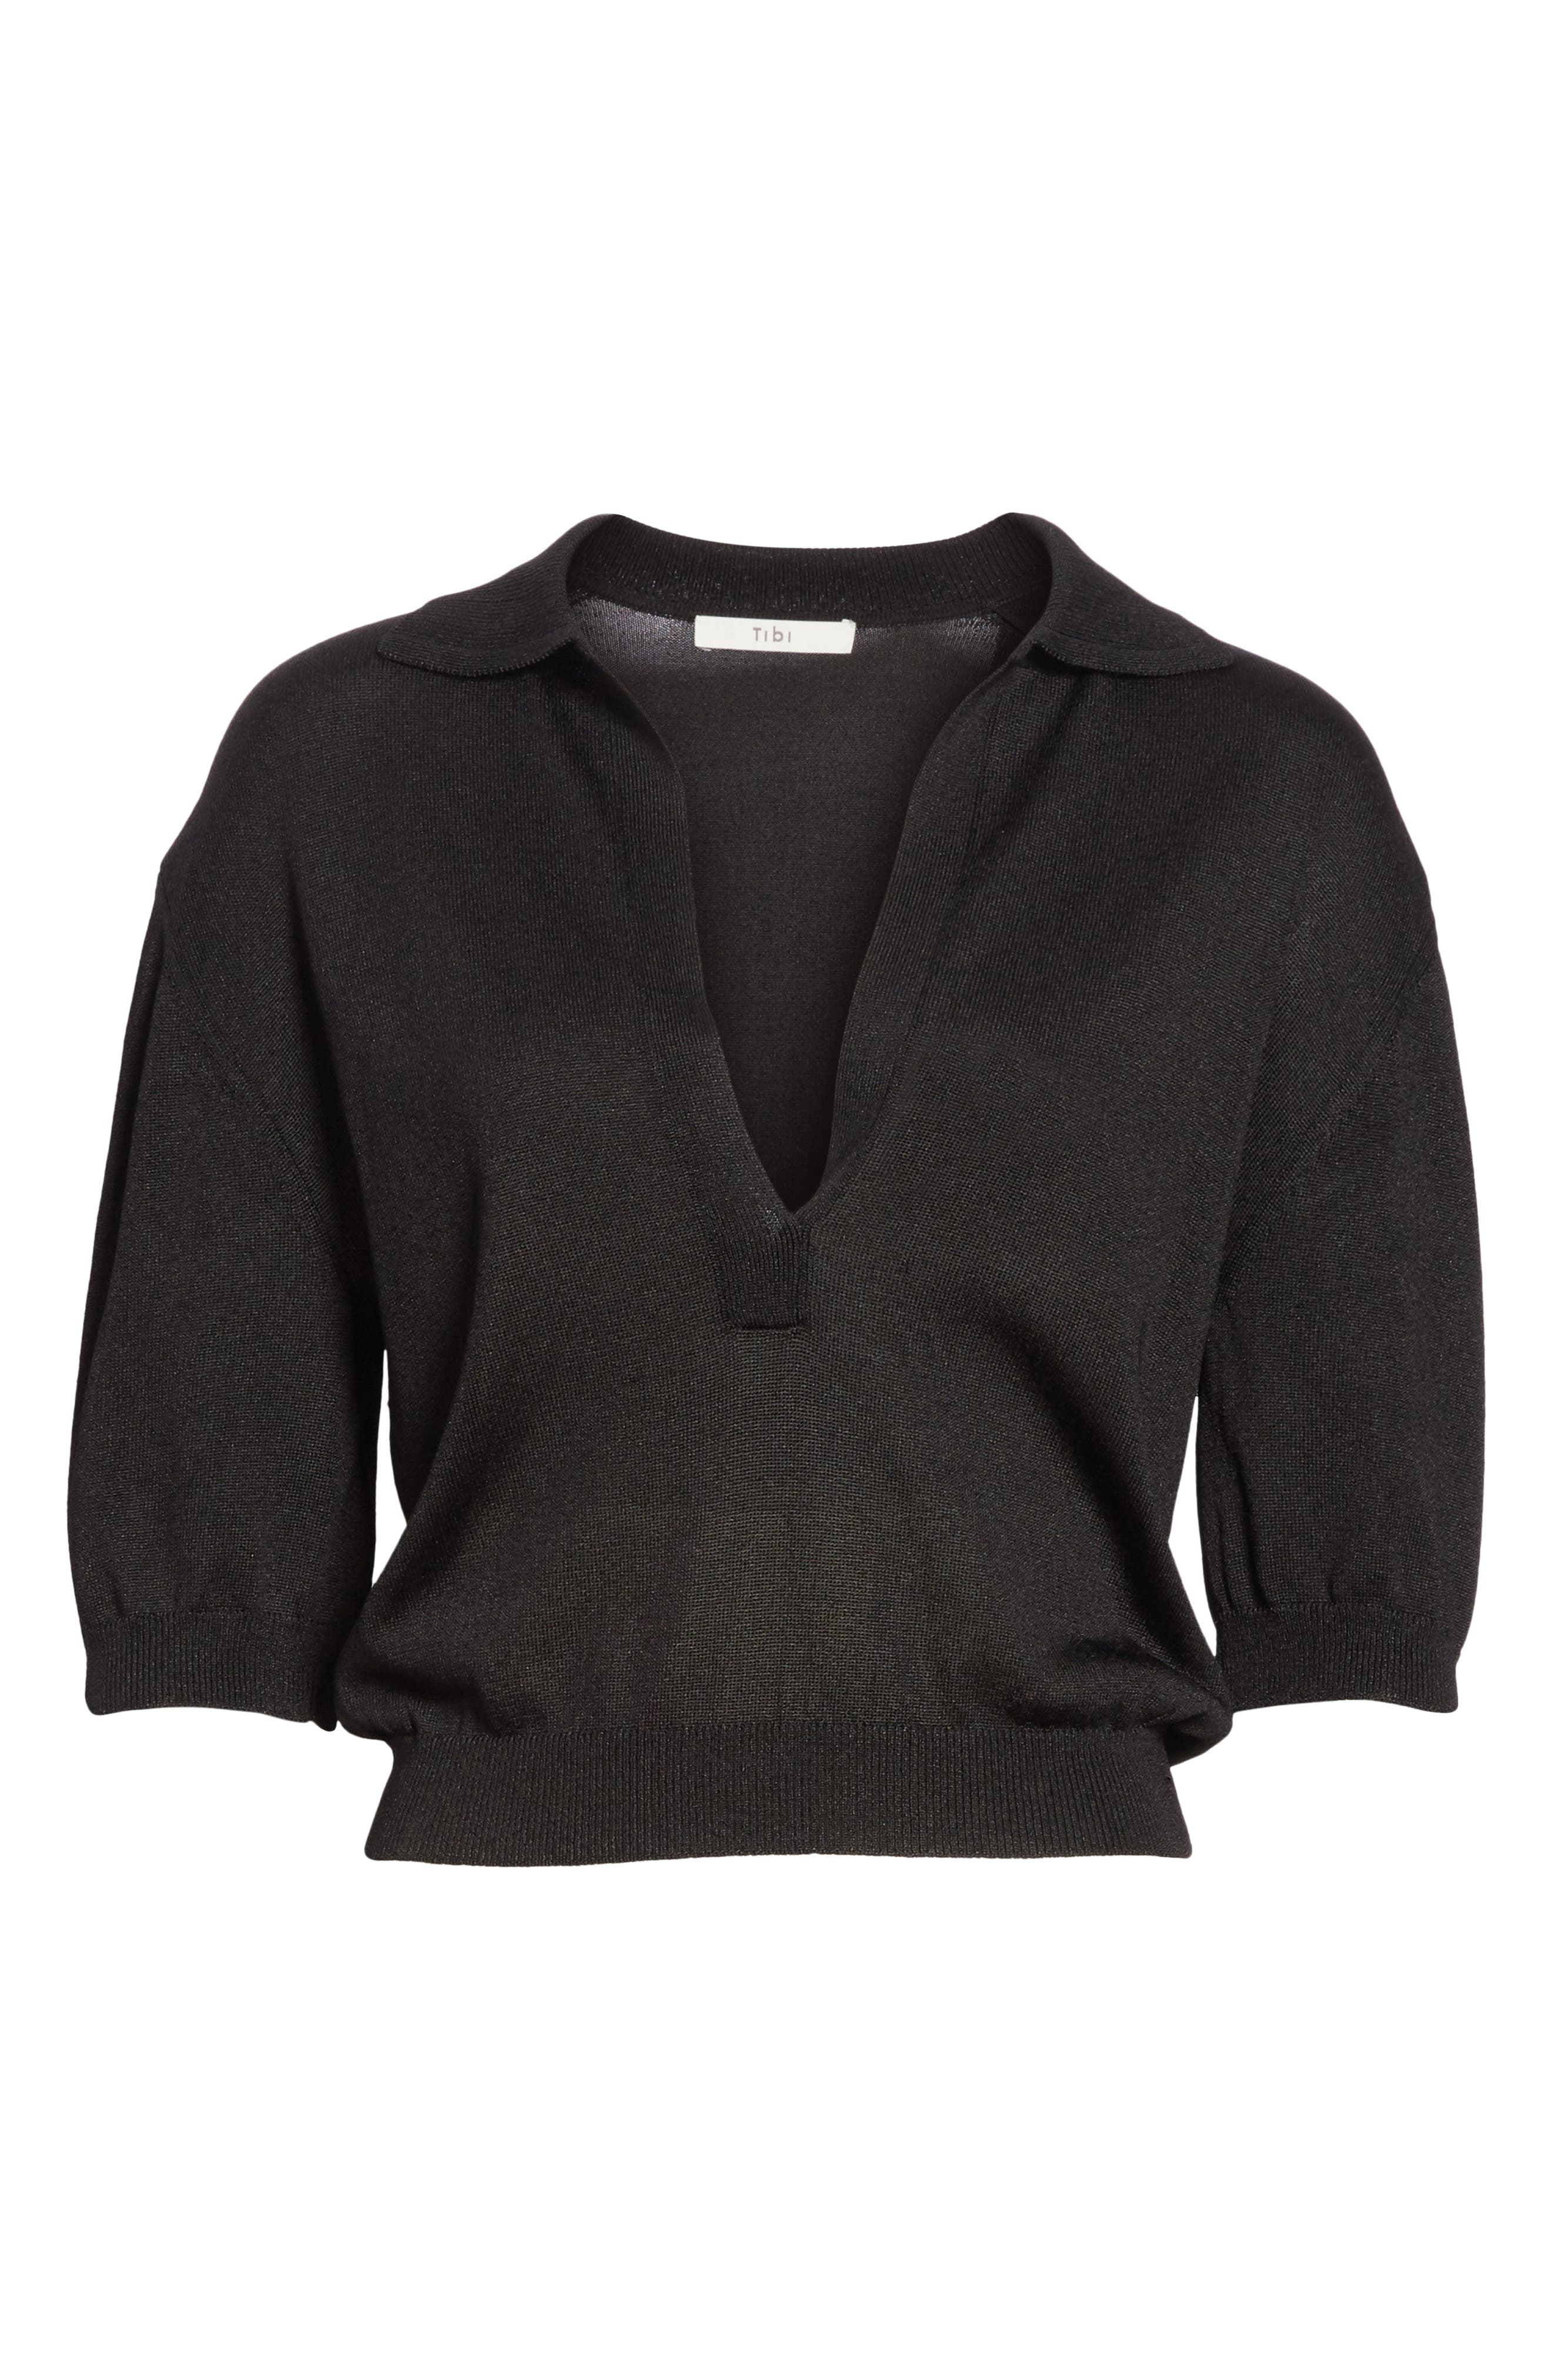 Crop Knit Pullover,                             Alternate thumbnail 6, color,                             001